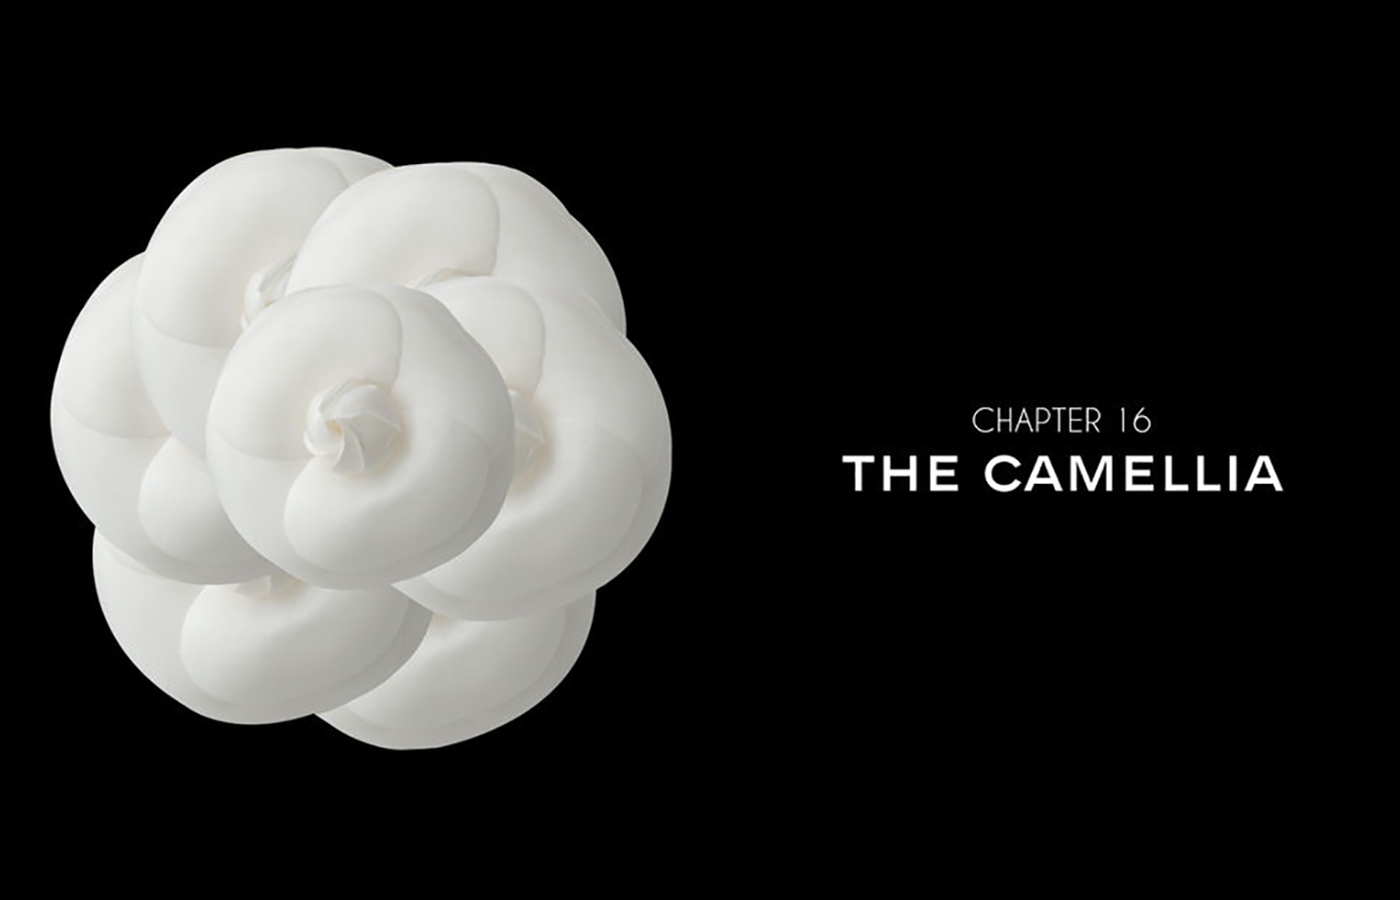 Chanel celebrates its iconic flower – The Camellia – The Glass Magazine